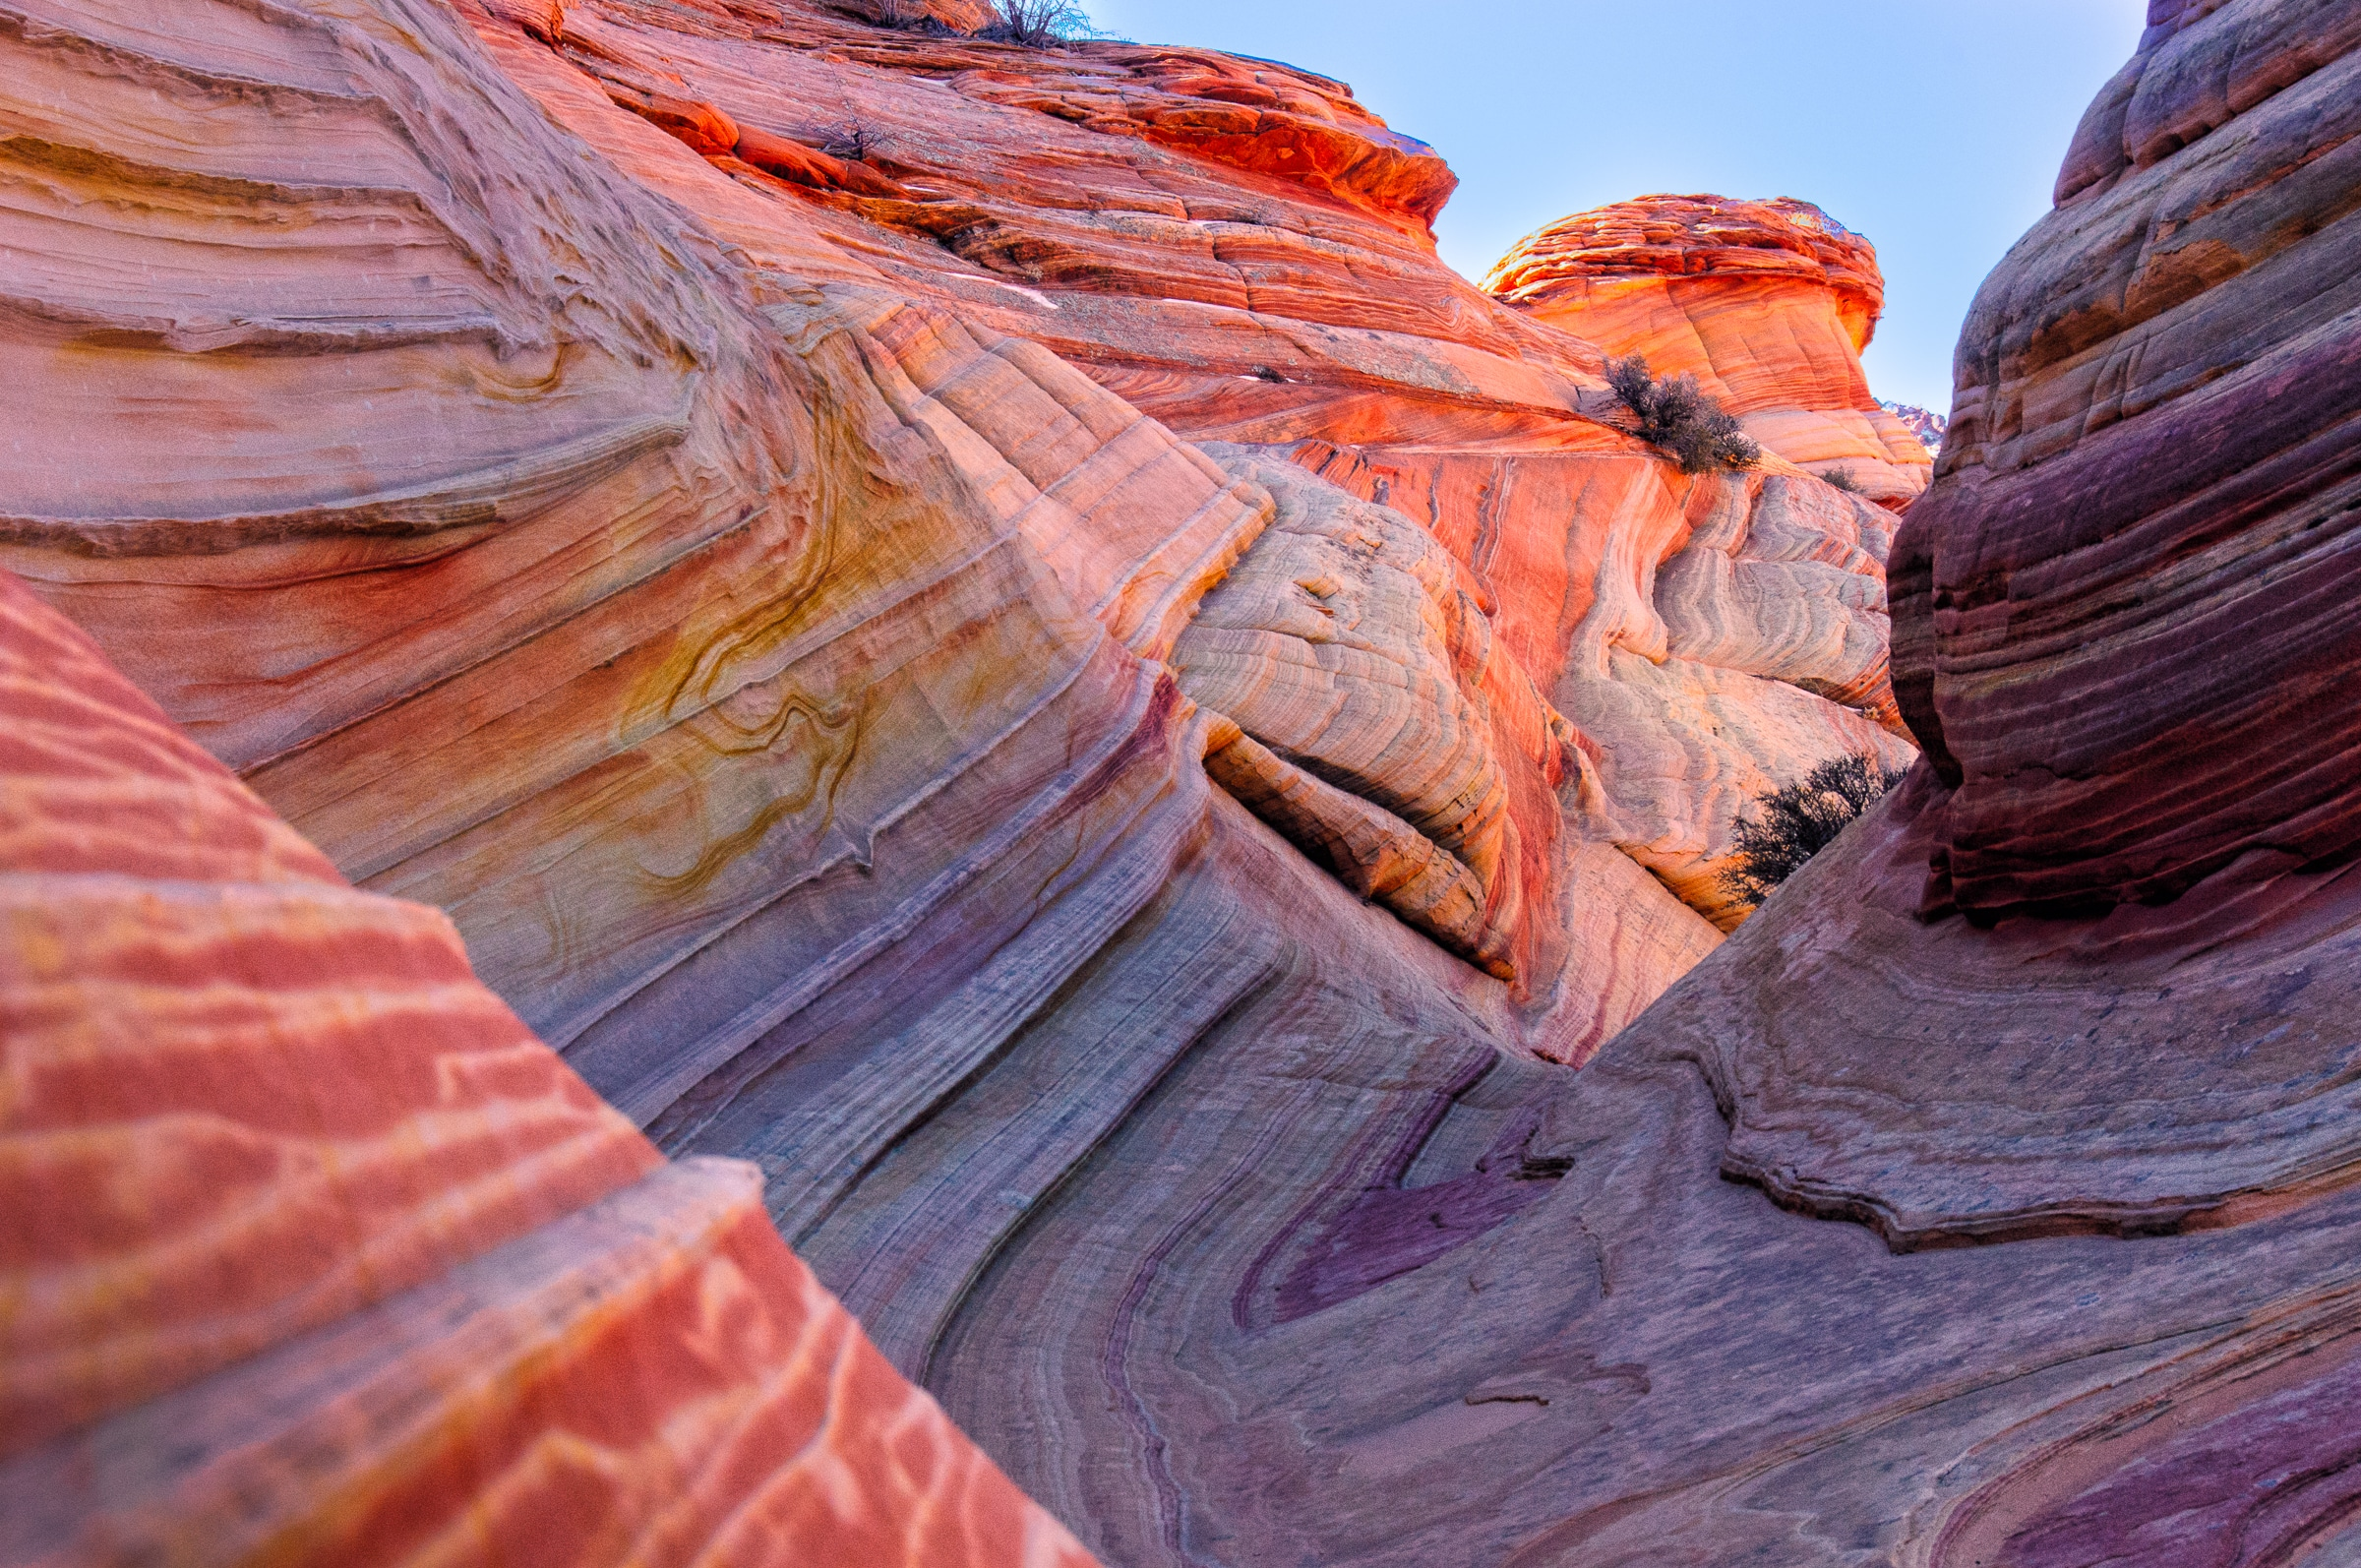 Sandstone strata at The Wave in the North Coyote Buttes area of the Vermillion Cliffs National Monument.